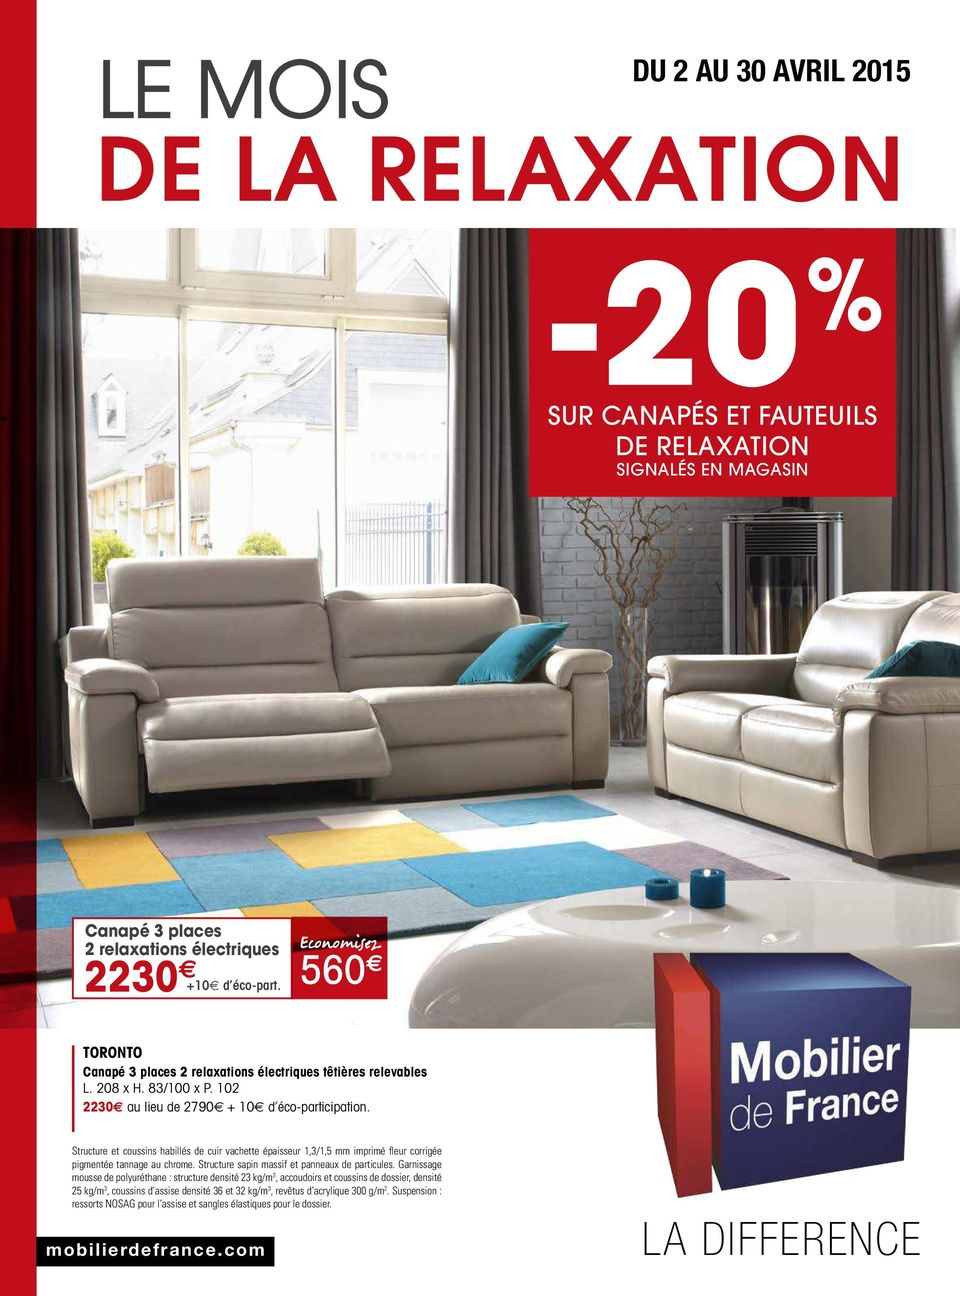 20 de la relaxation le mois la difference du 2 au 30 avril 2015 sur canap s et fauteuils de. Black Bedroom Furniture Sets. Home Design Ideas